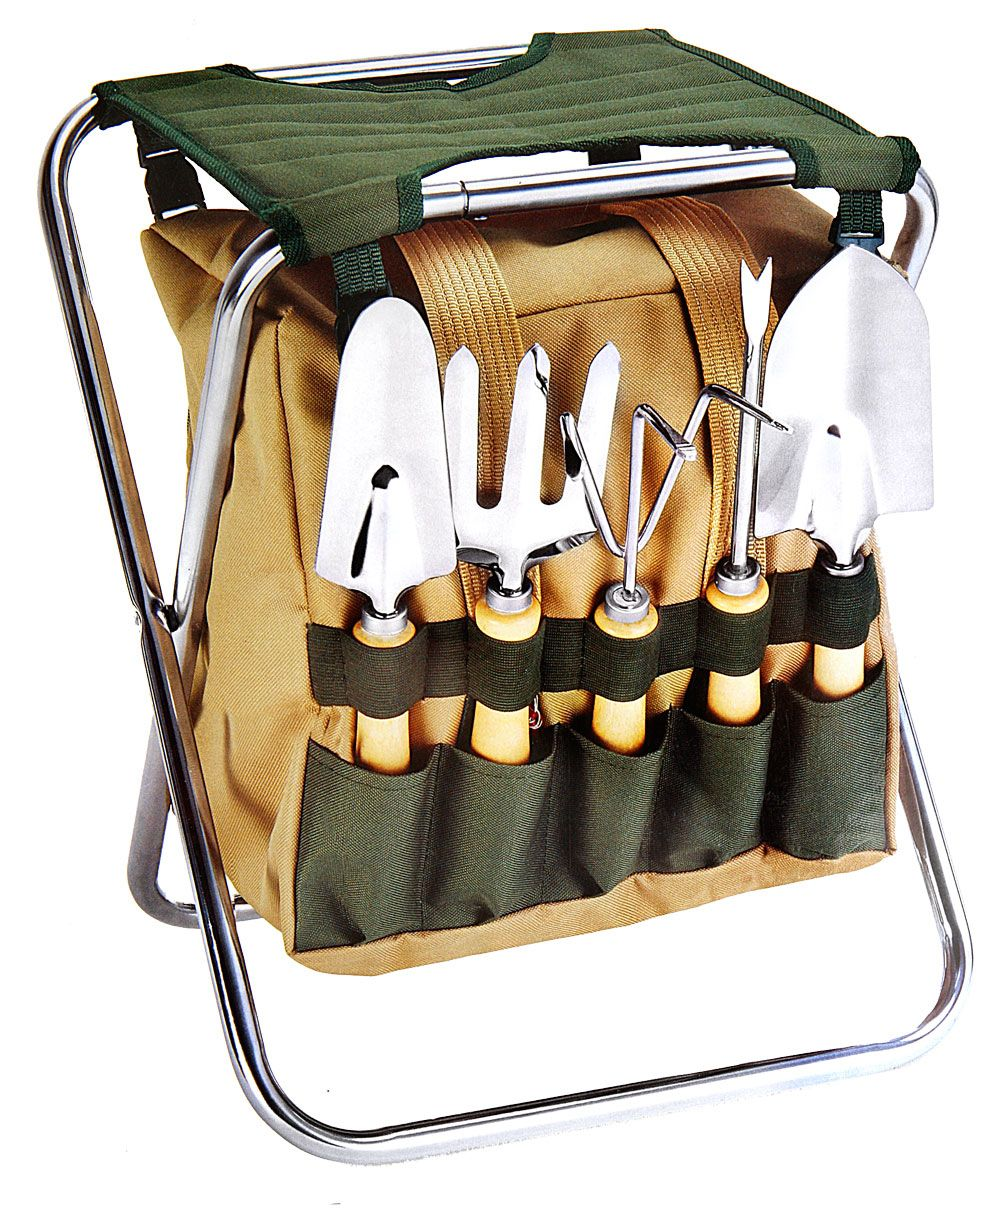 Garden Tote Seat for Mom or Dad Best garden tools